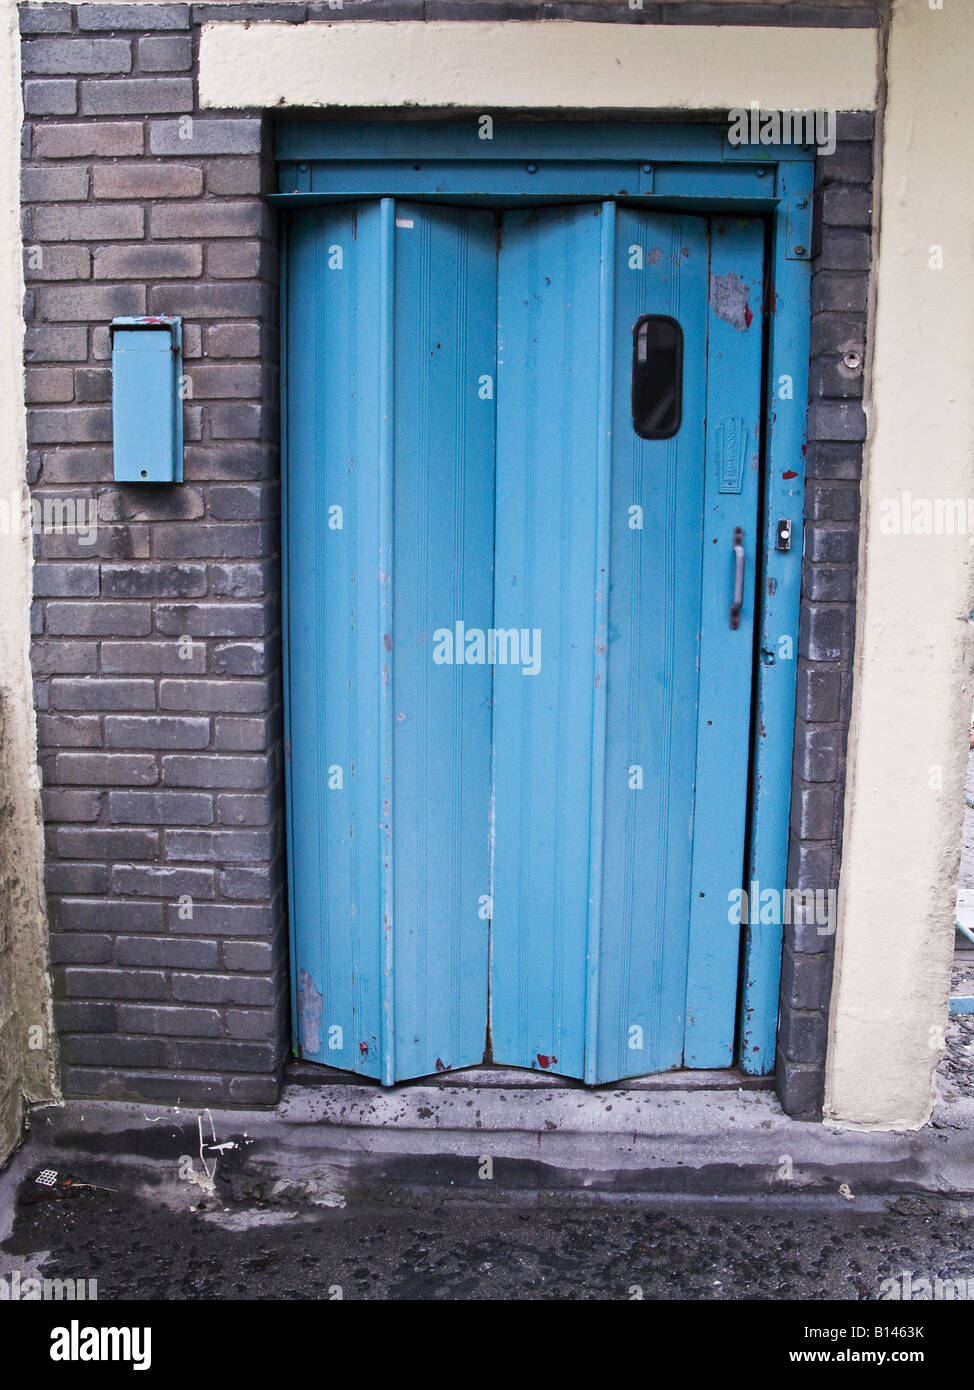 Old folding lift door - Stock Image & Concertina Door Stock Photos u0026 Concertina Door Stock Images - Alamy